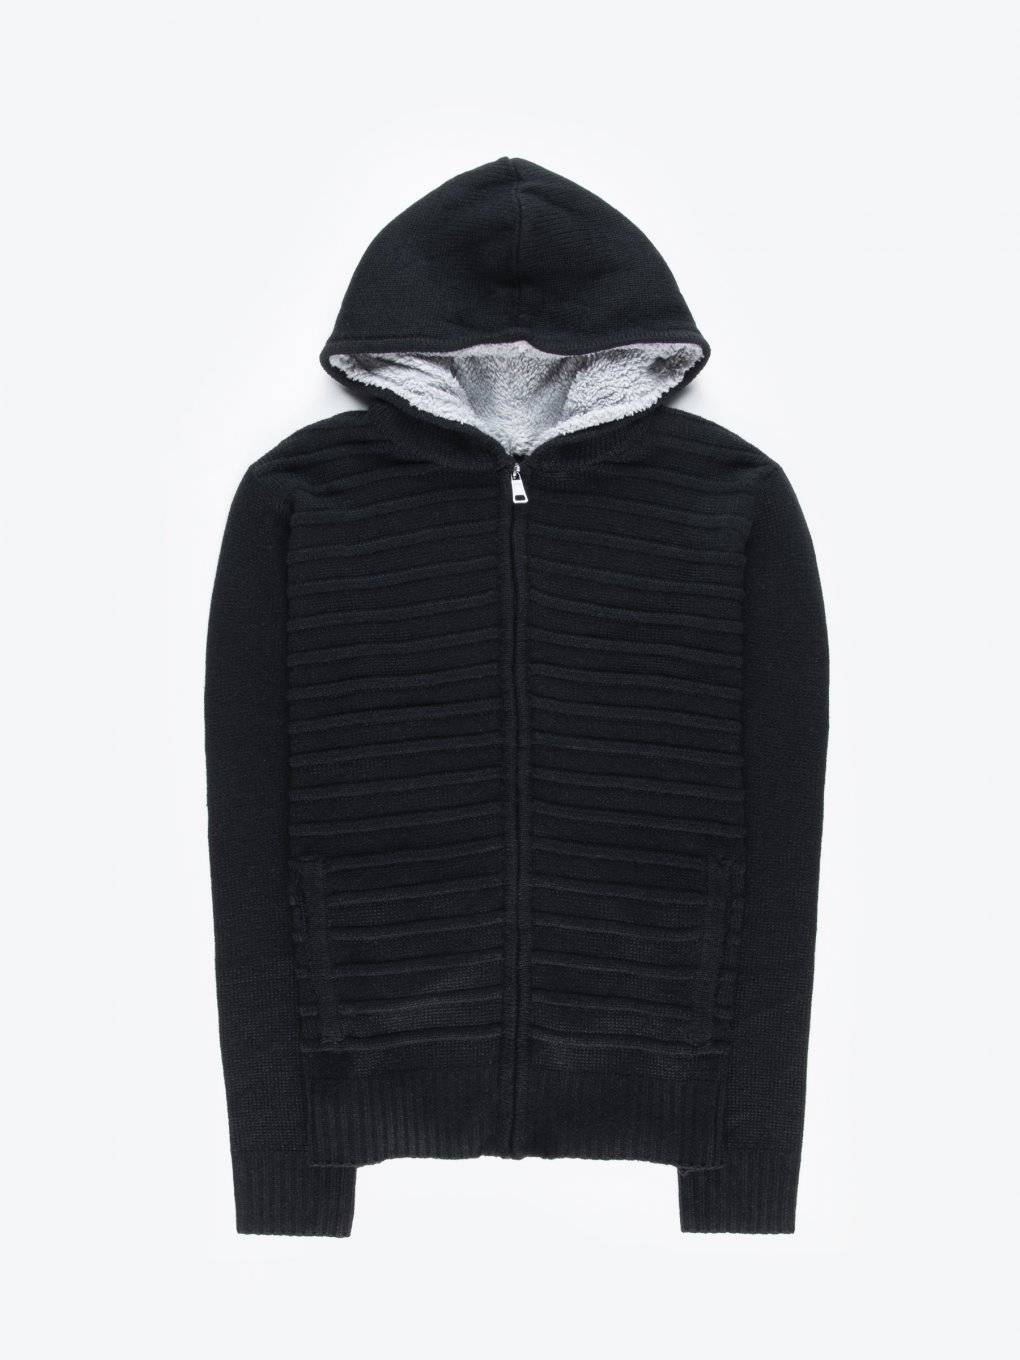 Zip-up cardingan with hood